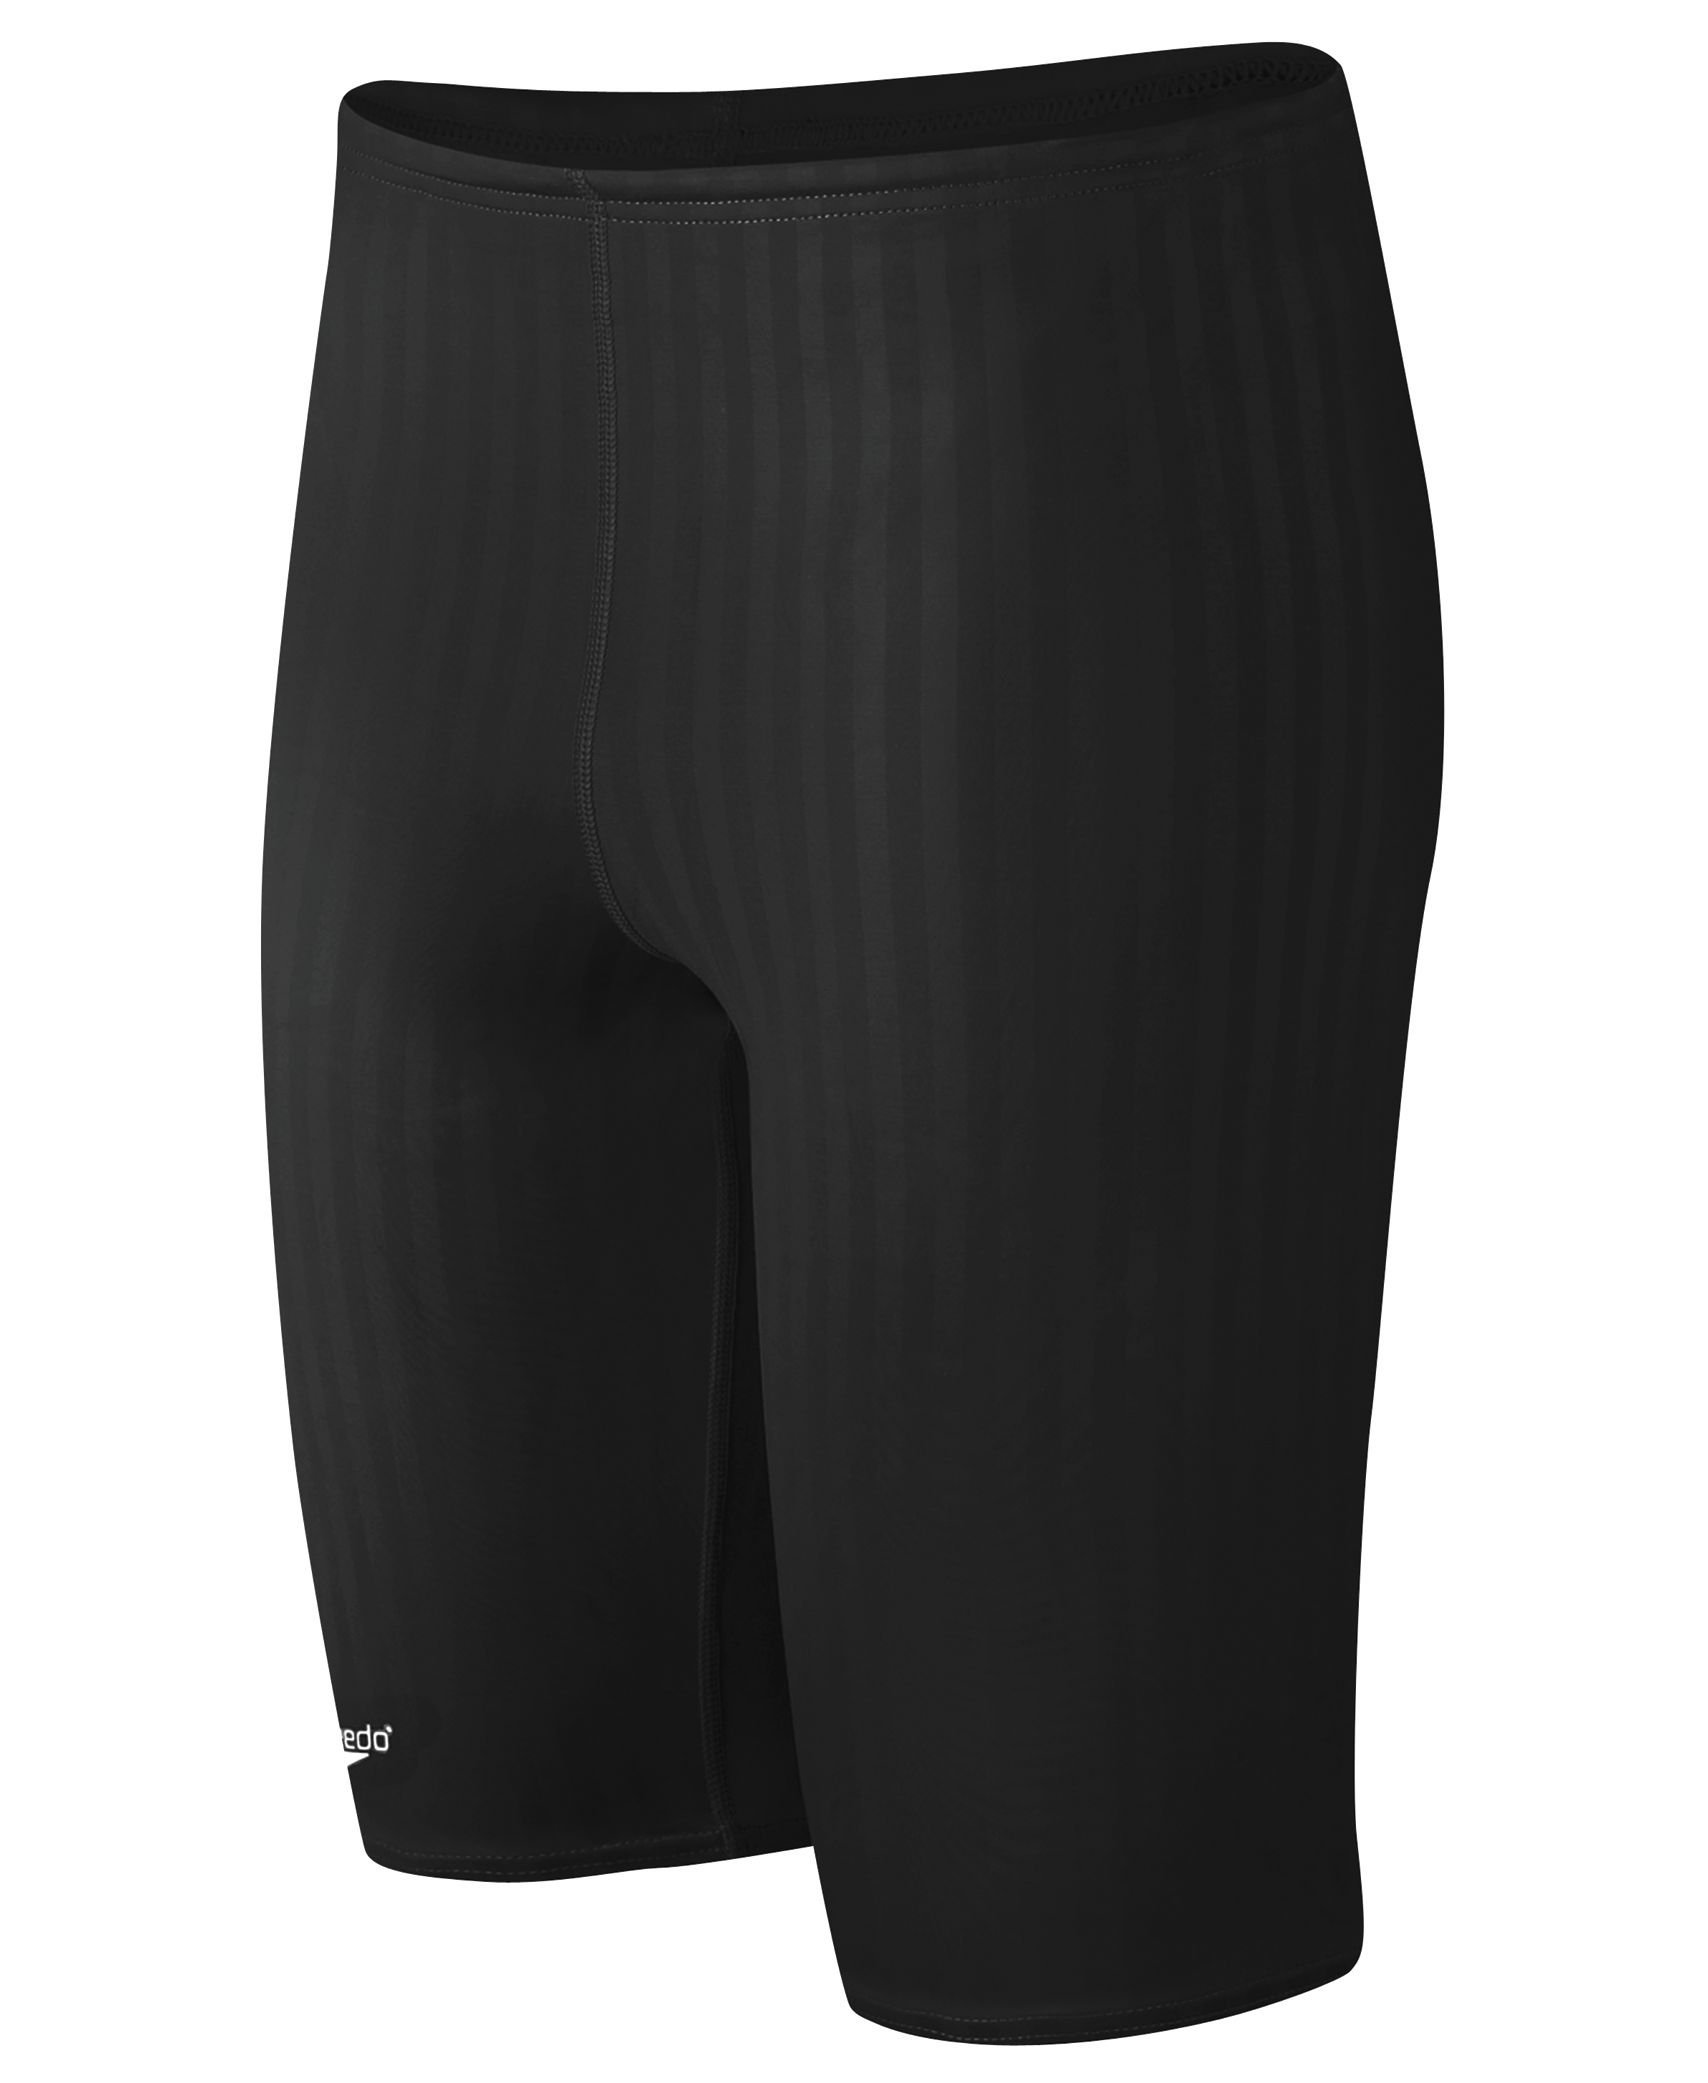 SPEEDO Aquablade Jammer,Black,28